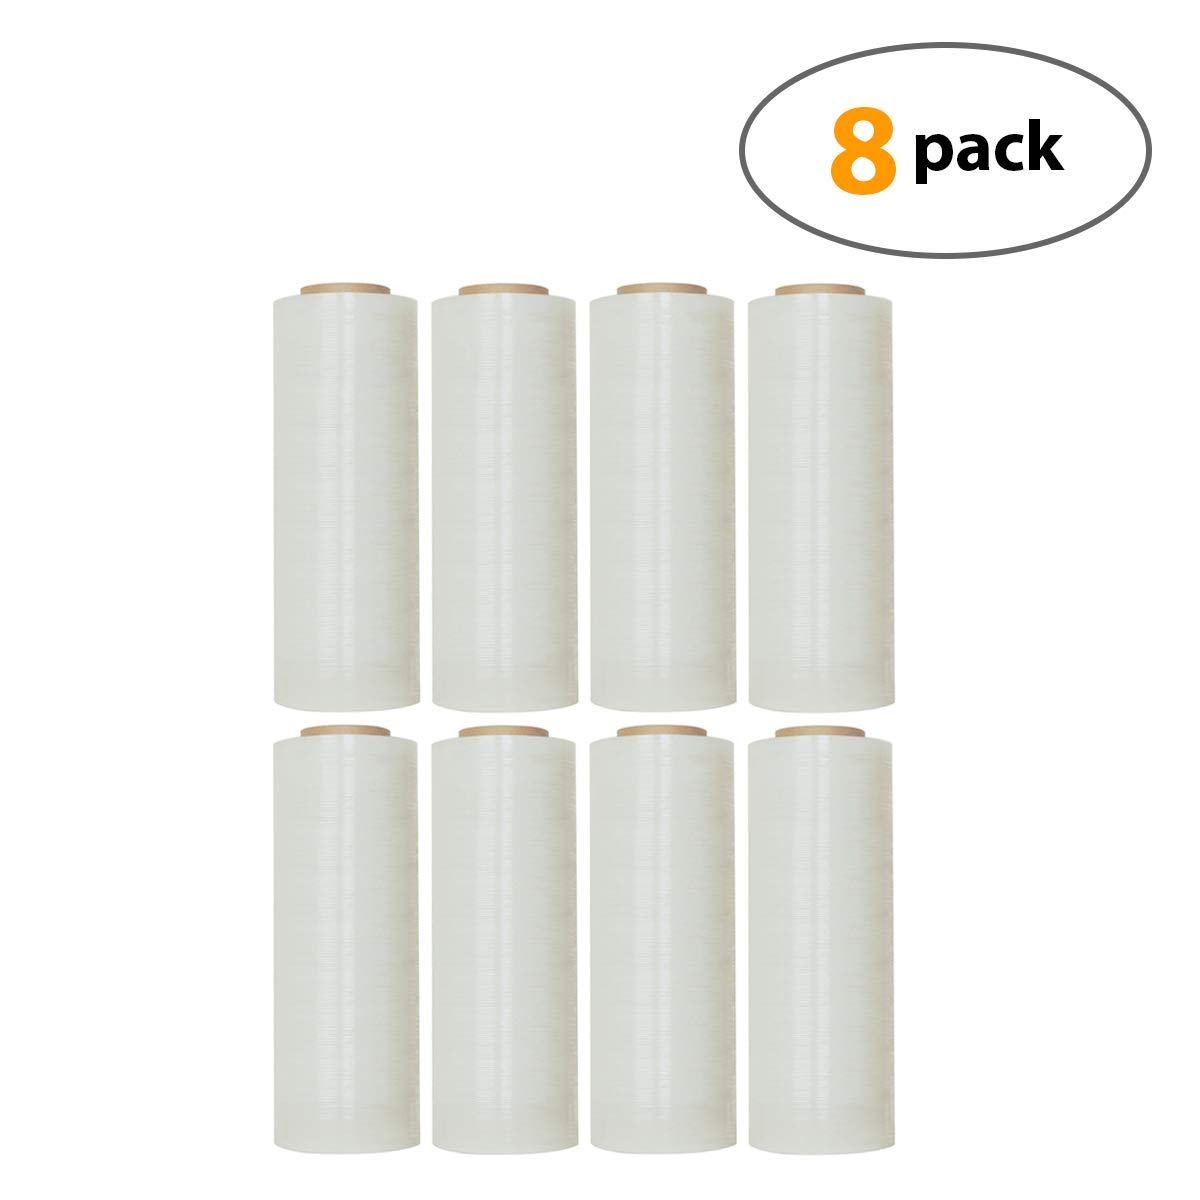 18'' X 1500 Feet Industrial Strength Pallet Clear Shrink Wrap 8.25 Lb Per Roll Thick 80 Gauge(20 Micron) Heavy Duty Self-Adhesive Durable Cling Stretch Film Wrap Packing Moving Box Furniture (8 Roll)